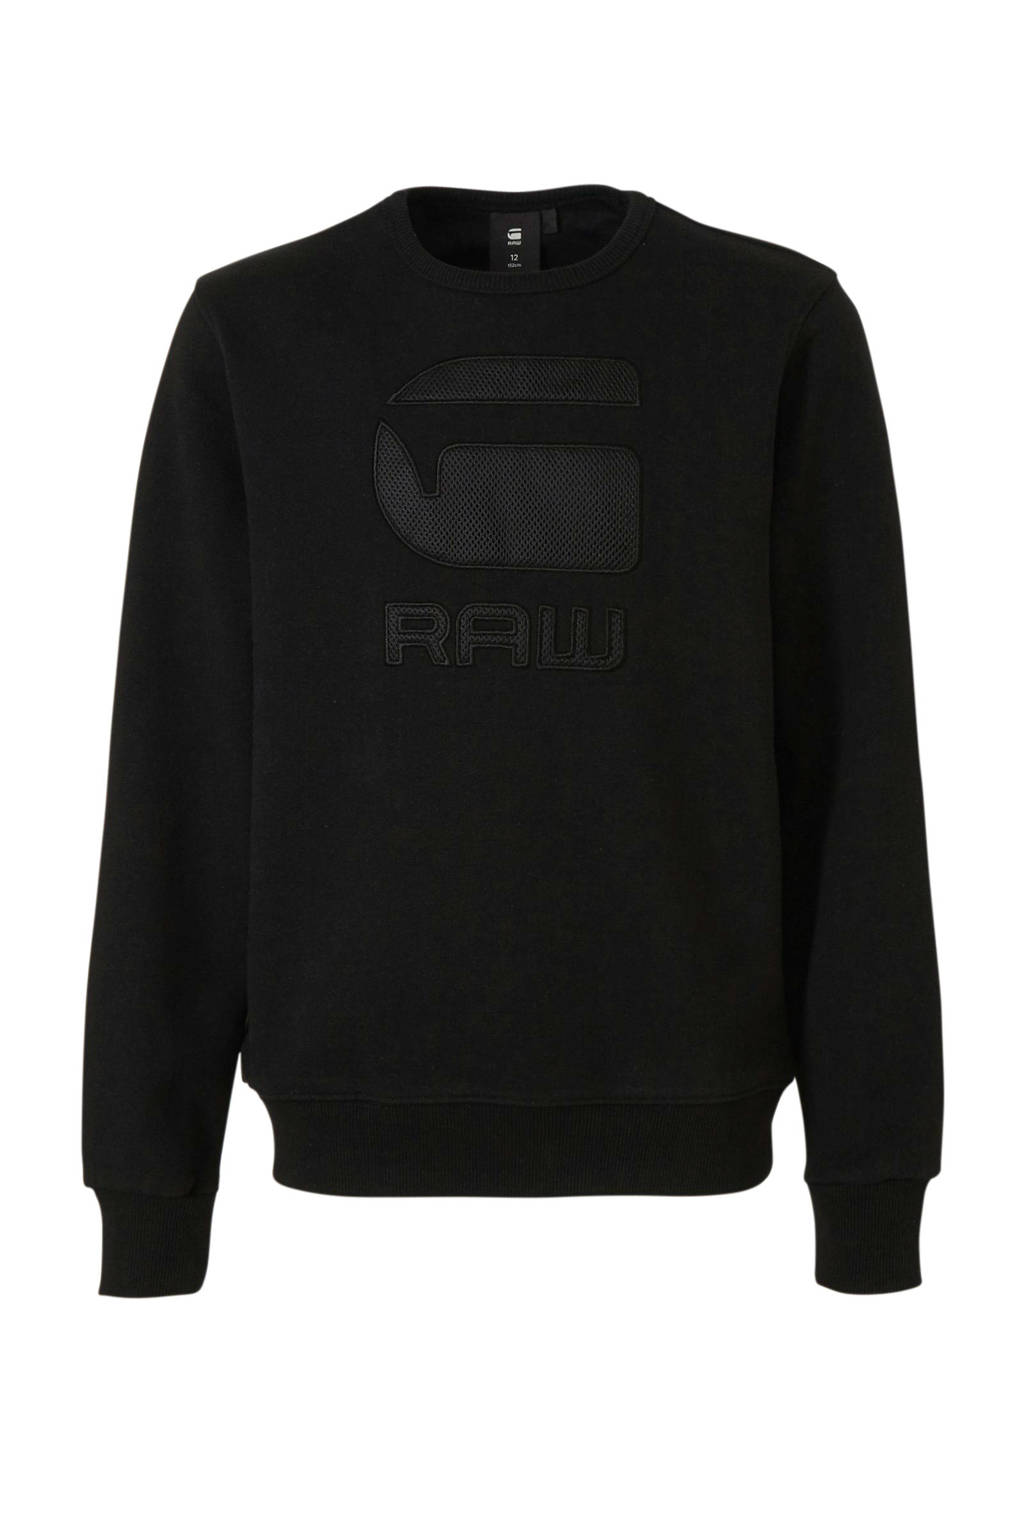 G-Star RAW sweater Swando met logo zwart, Zwart